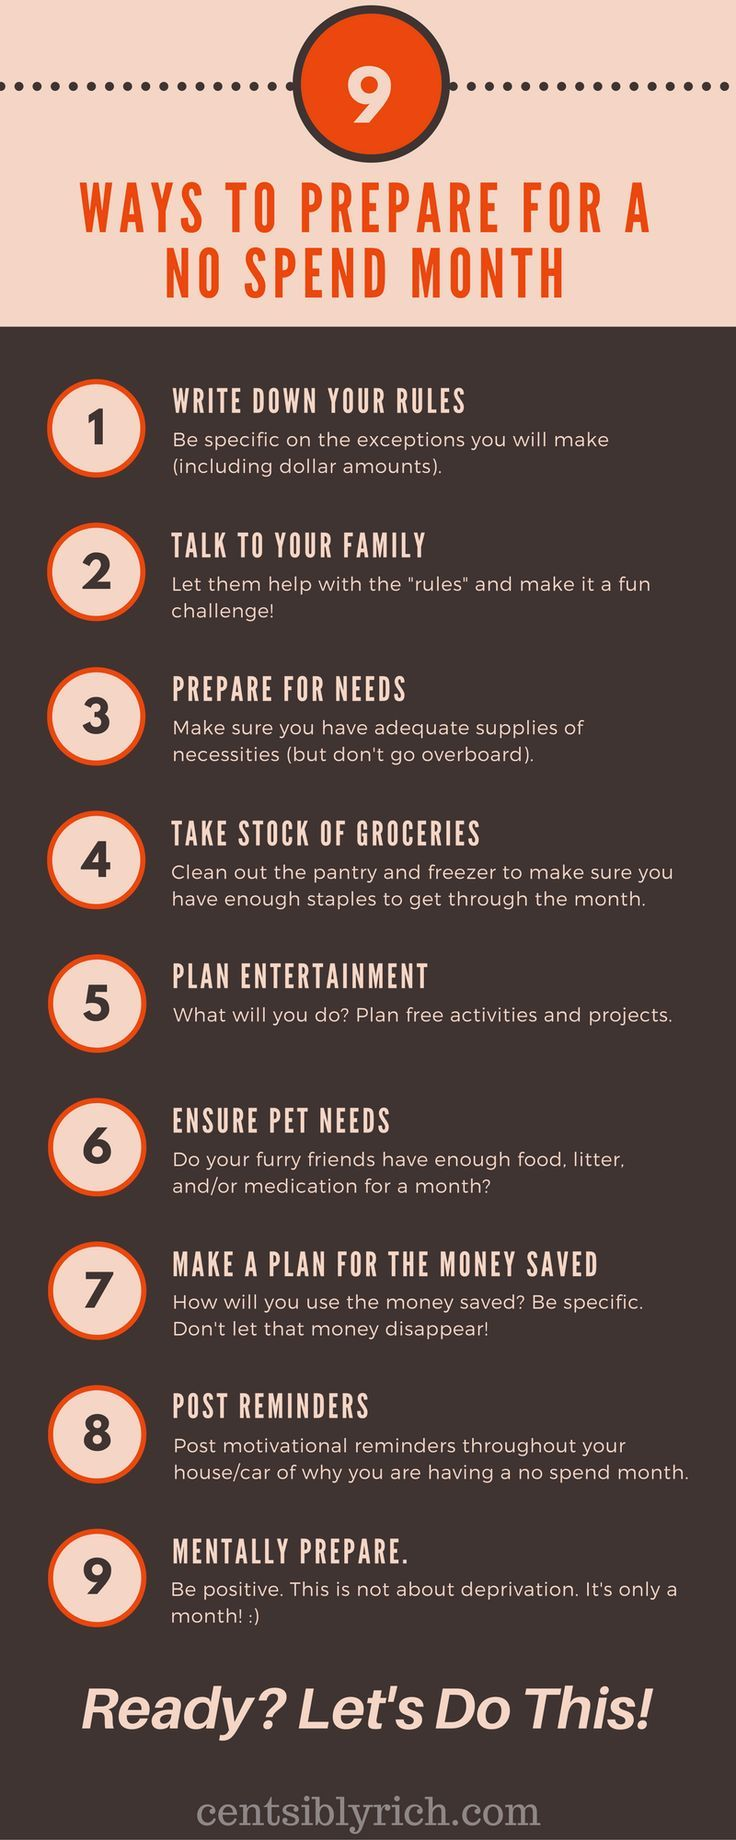 Join me for a No Spend Month! Here are some tips to help you prepare.